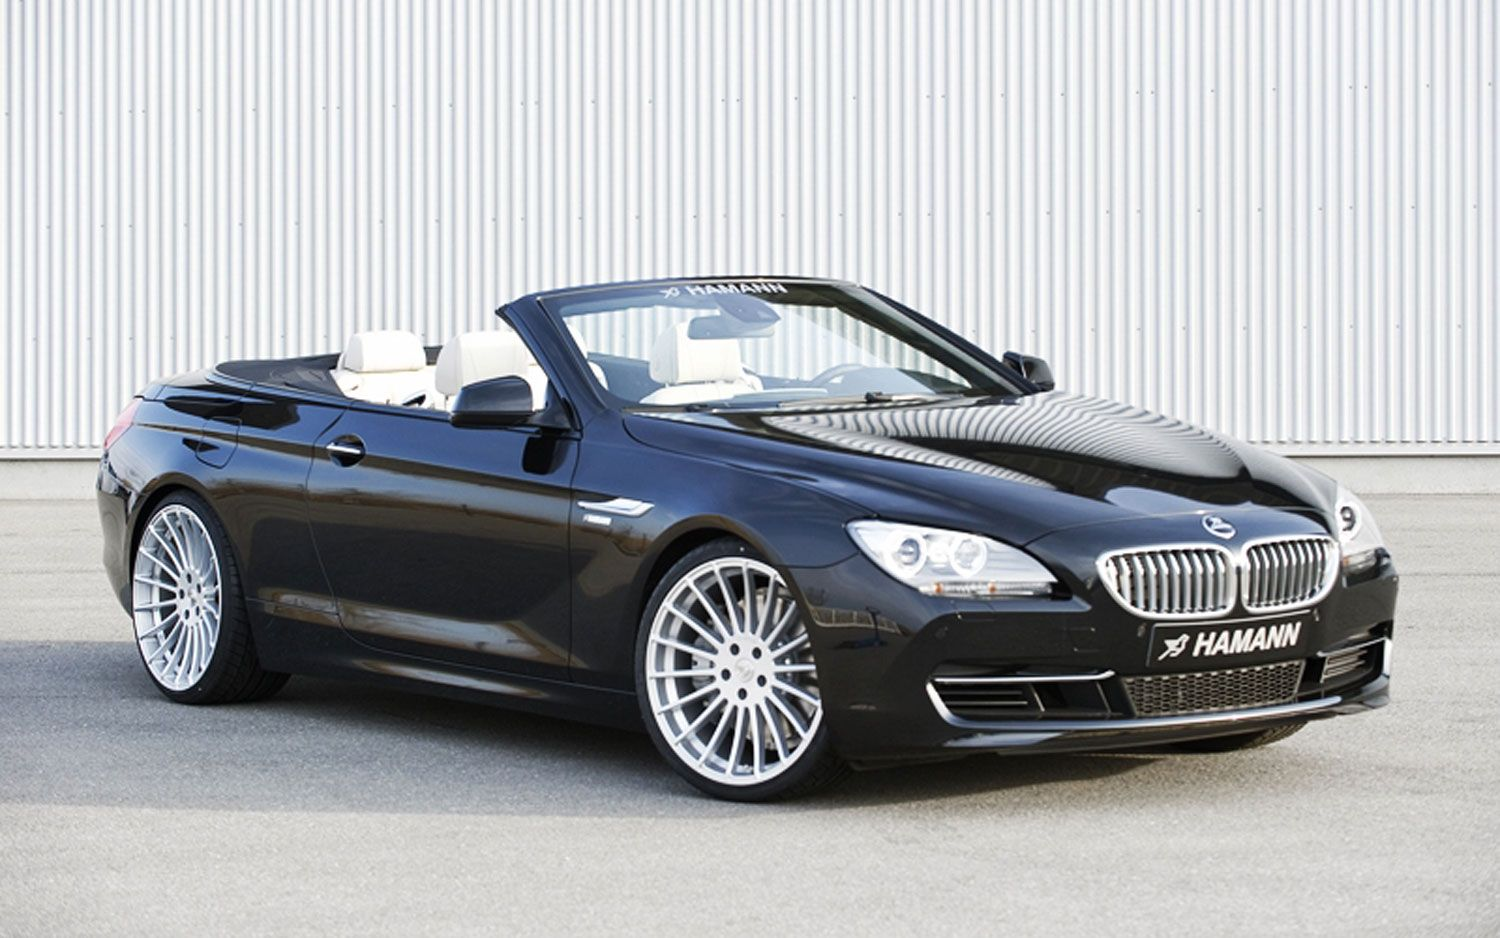 Bmw 6 Series Convertible Gets Makeover Hamann Style Bmw Bmw 6